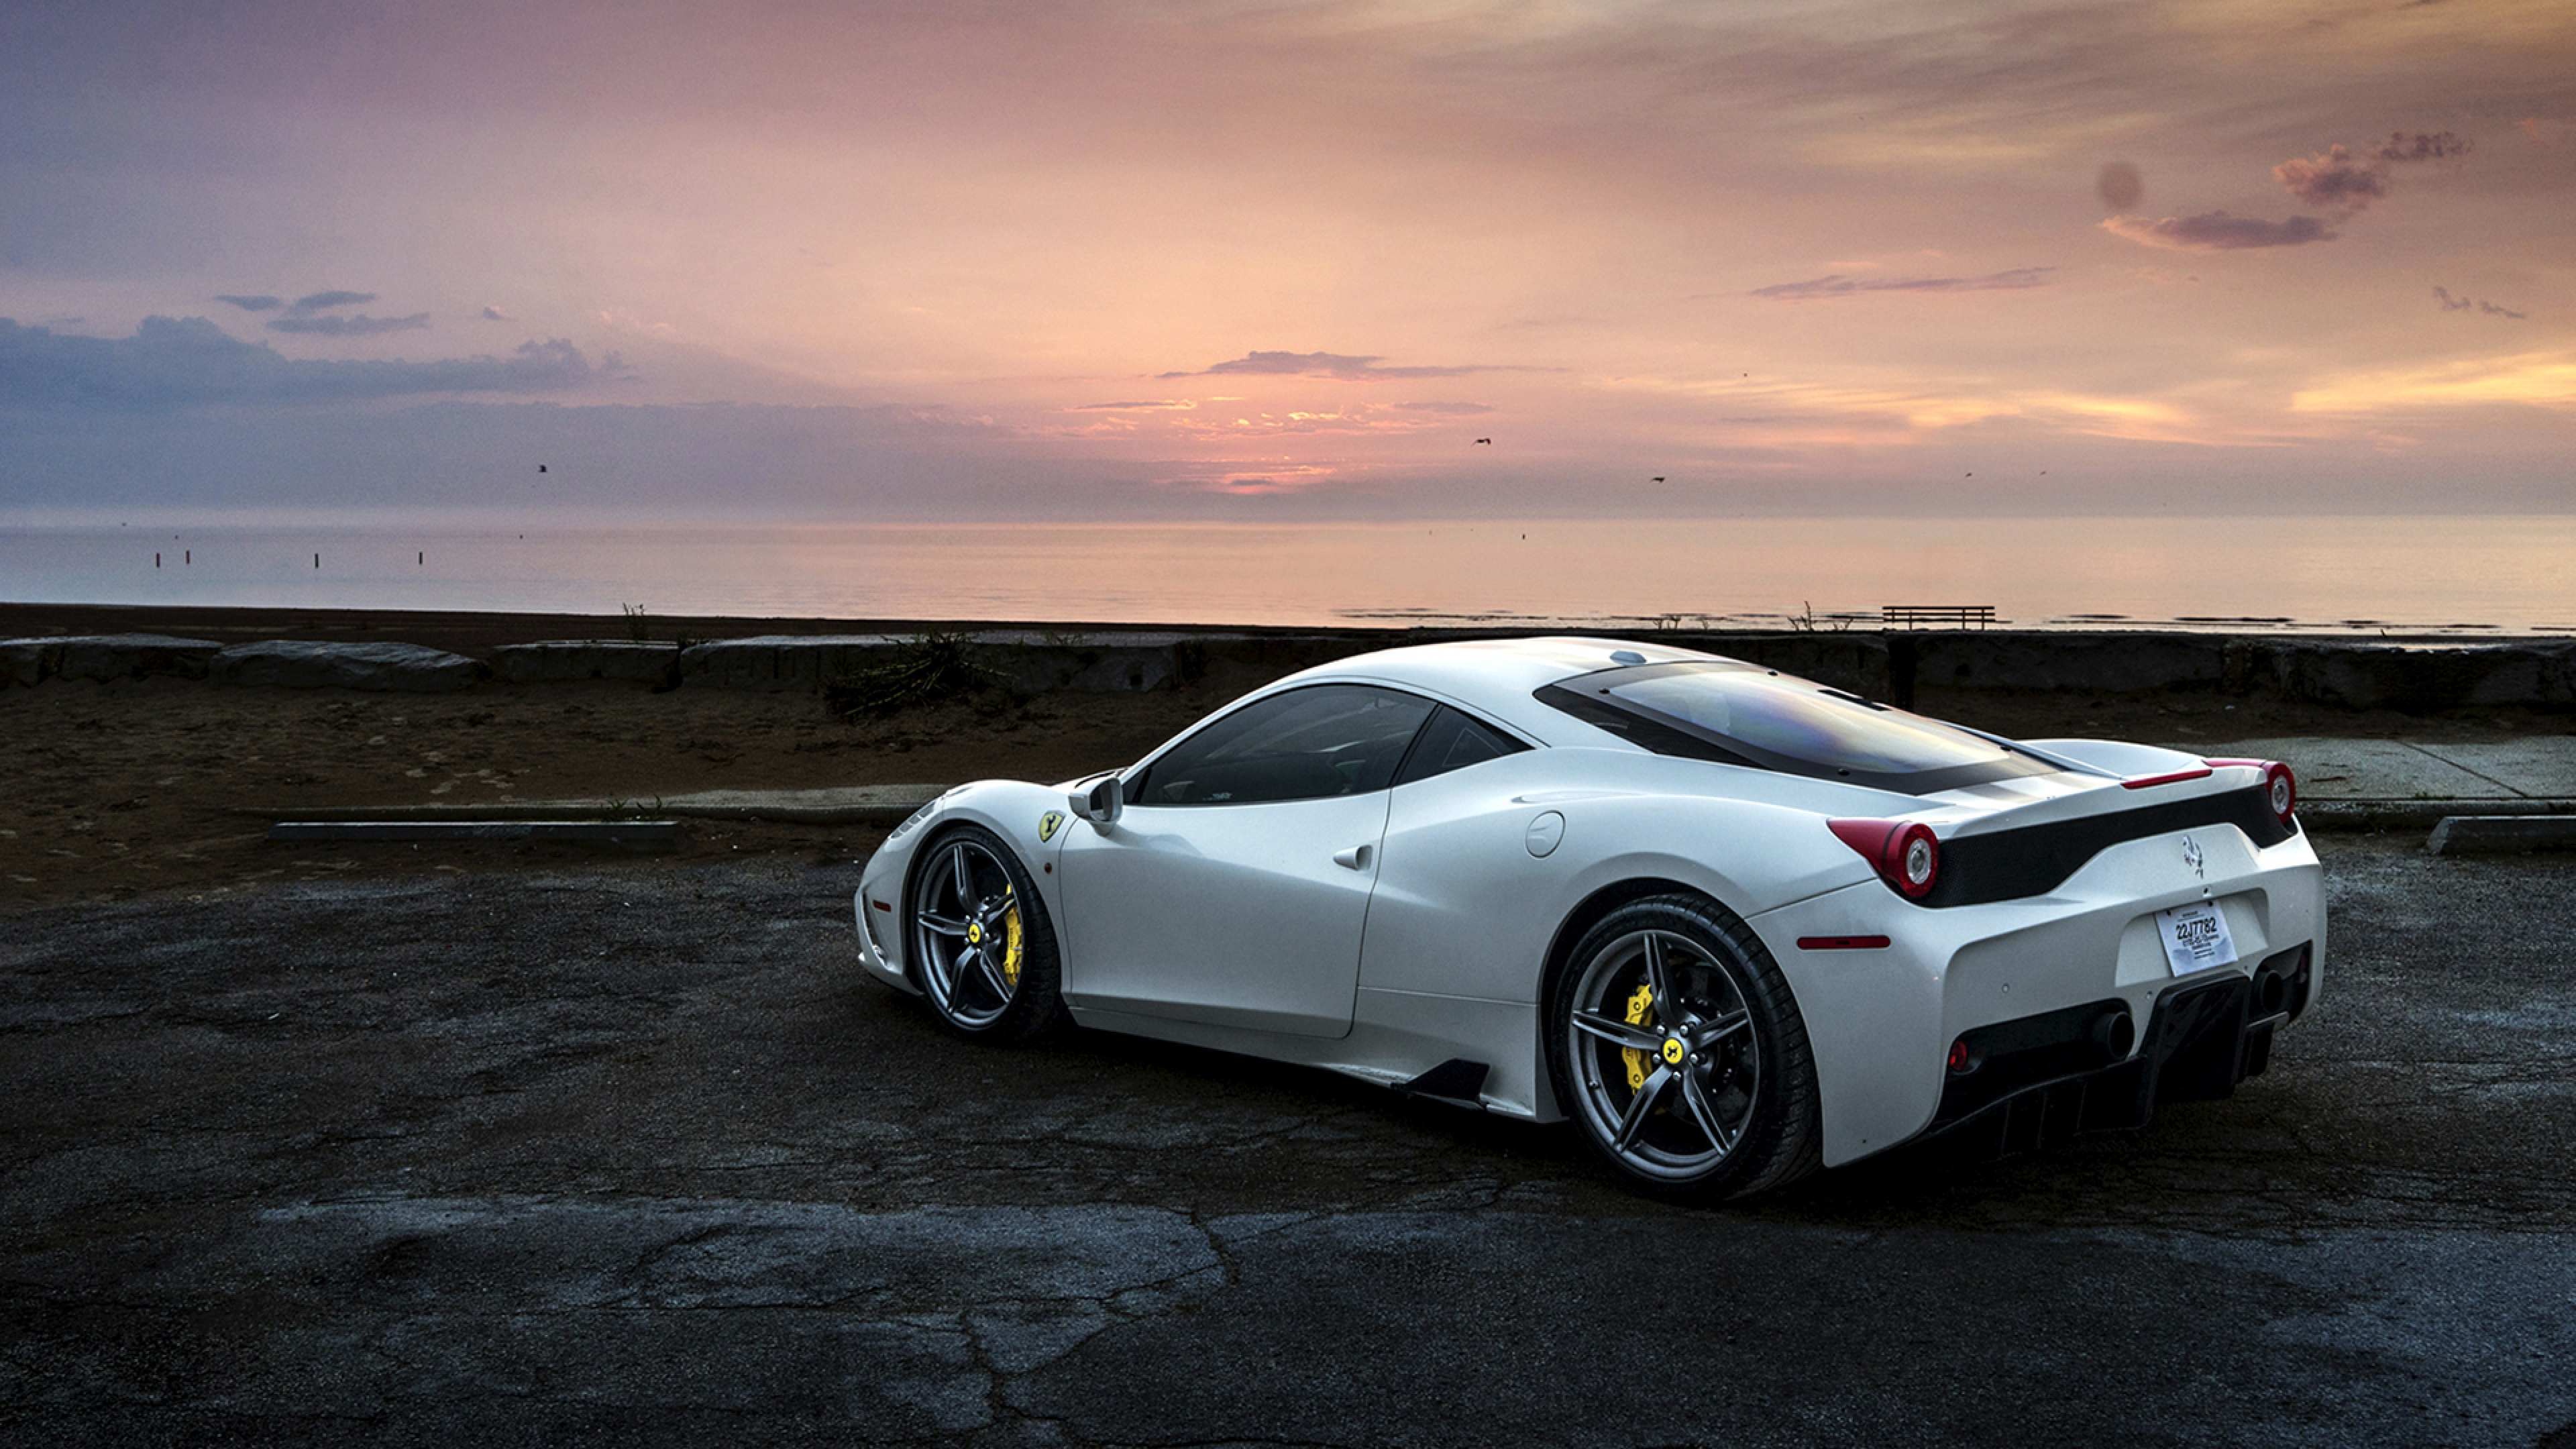 Ferrari 458 White, HD Cars, 4k Wallpapers, Images ...